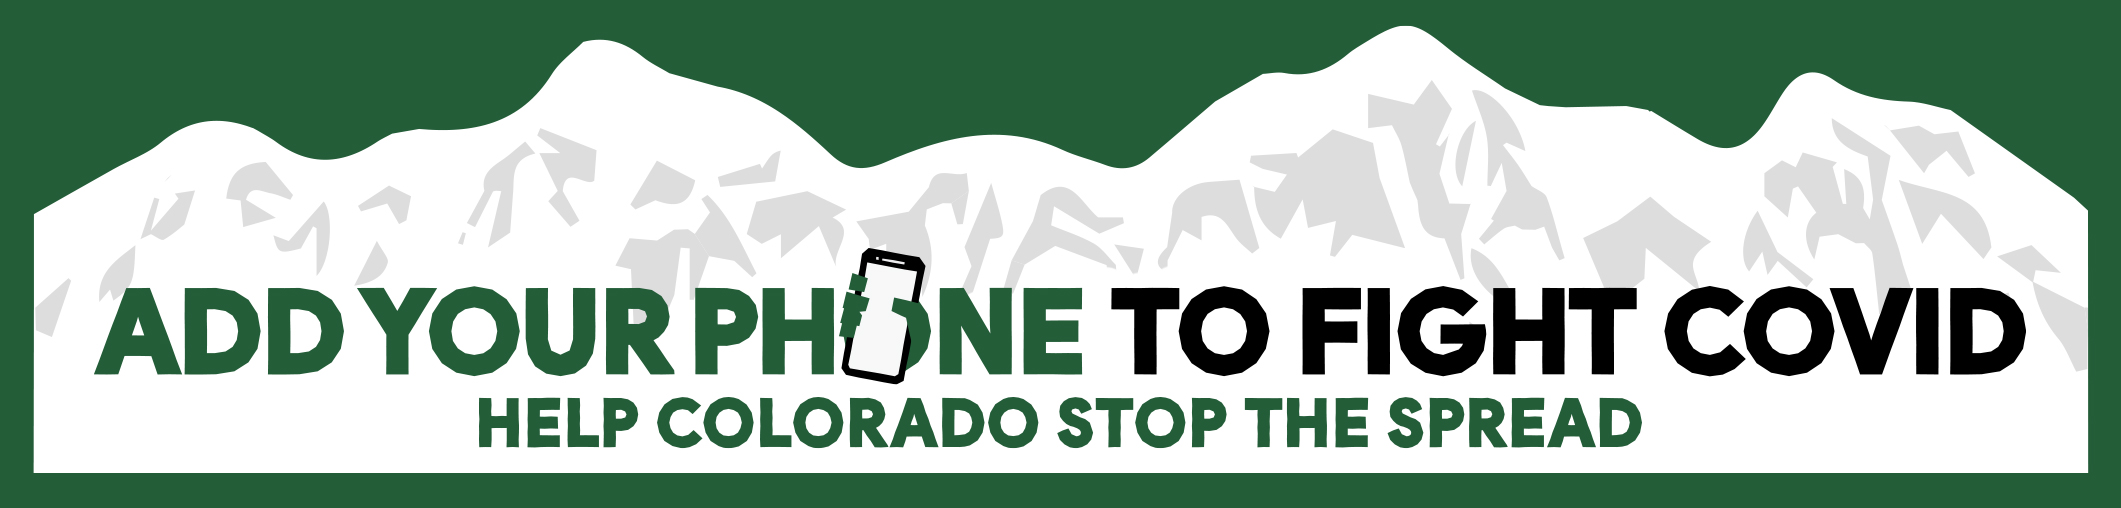 Add your phone to fight COVID. Help Colorado stop the spread